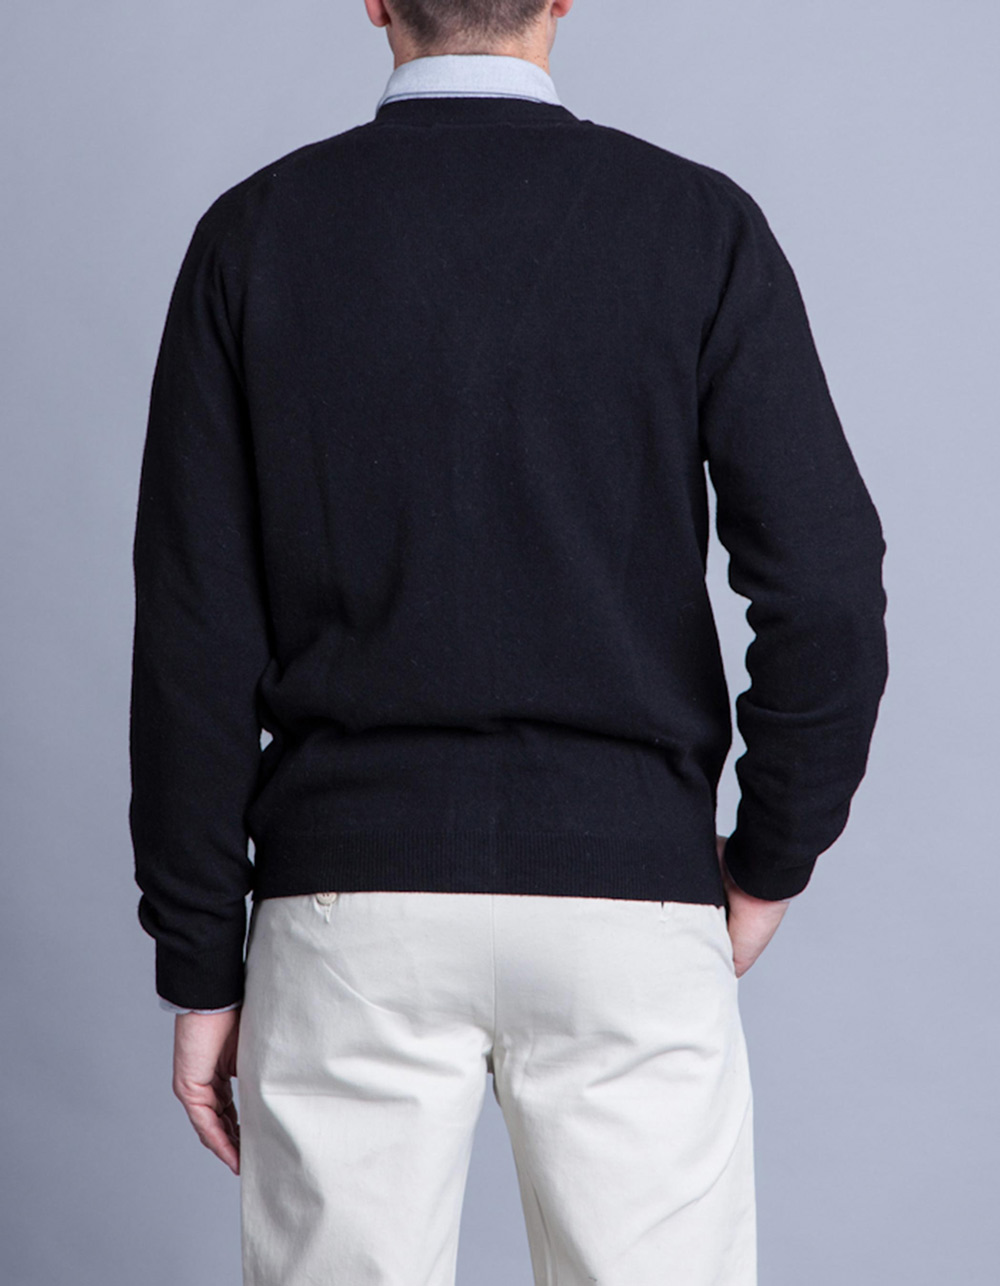 Black cardigan - Backside